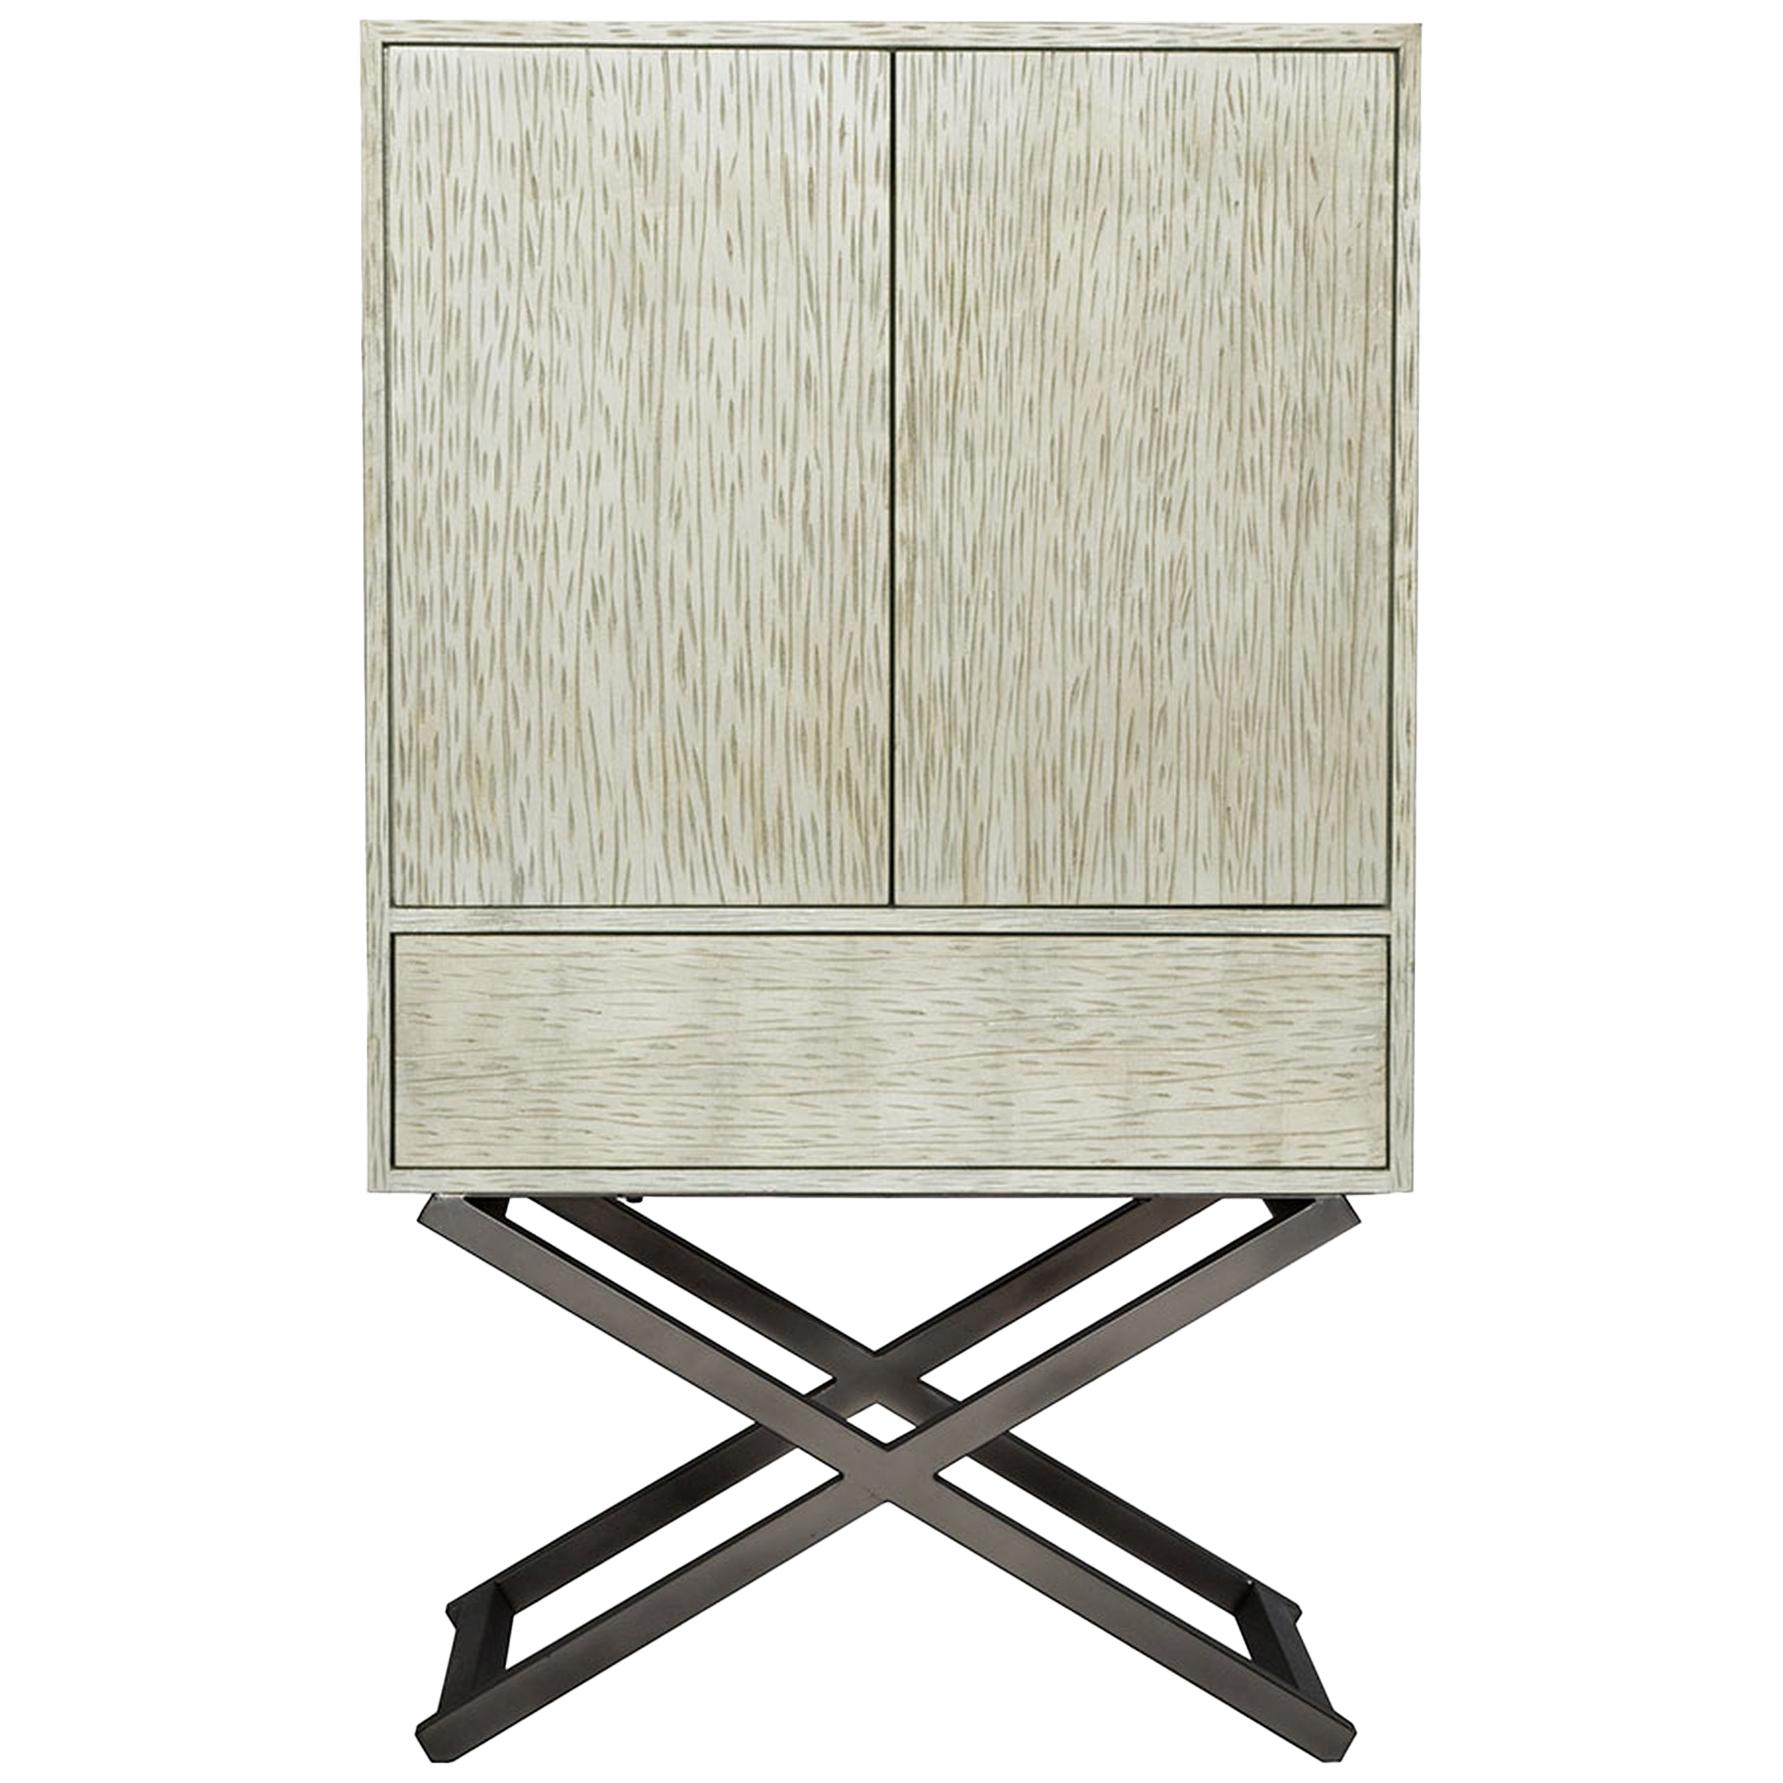 Mulholland Dresser in Antique Silver and Natural Metal by Innova Luxuxy Group